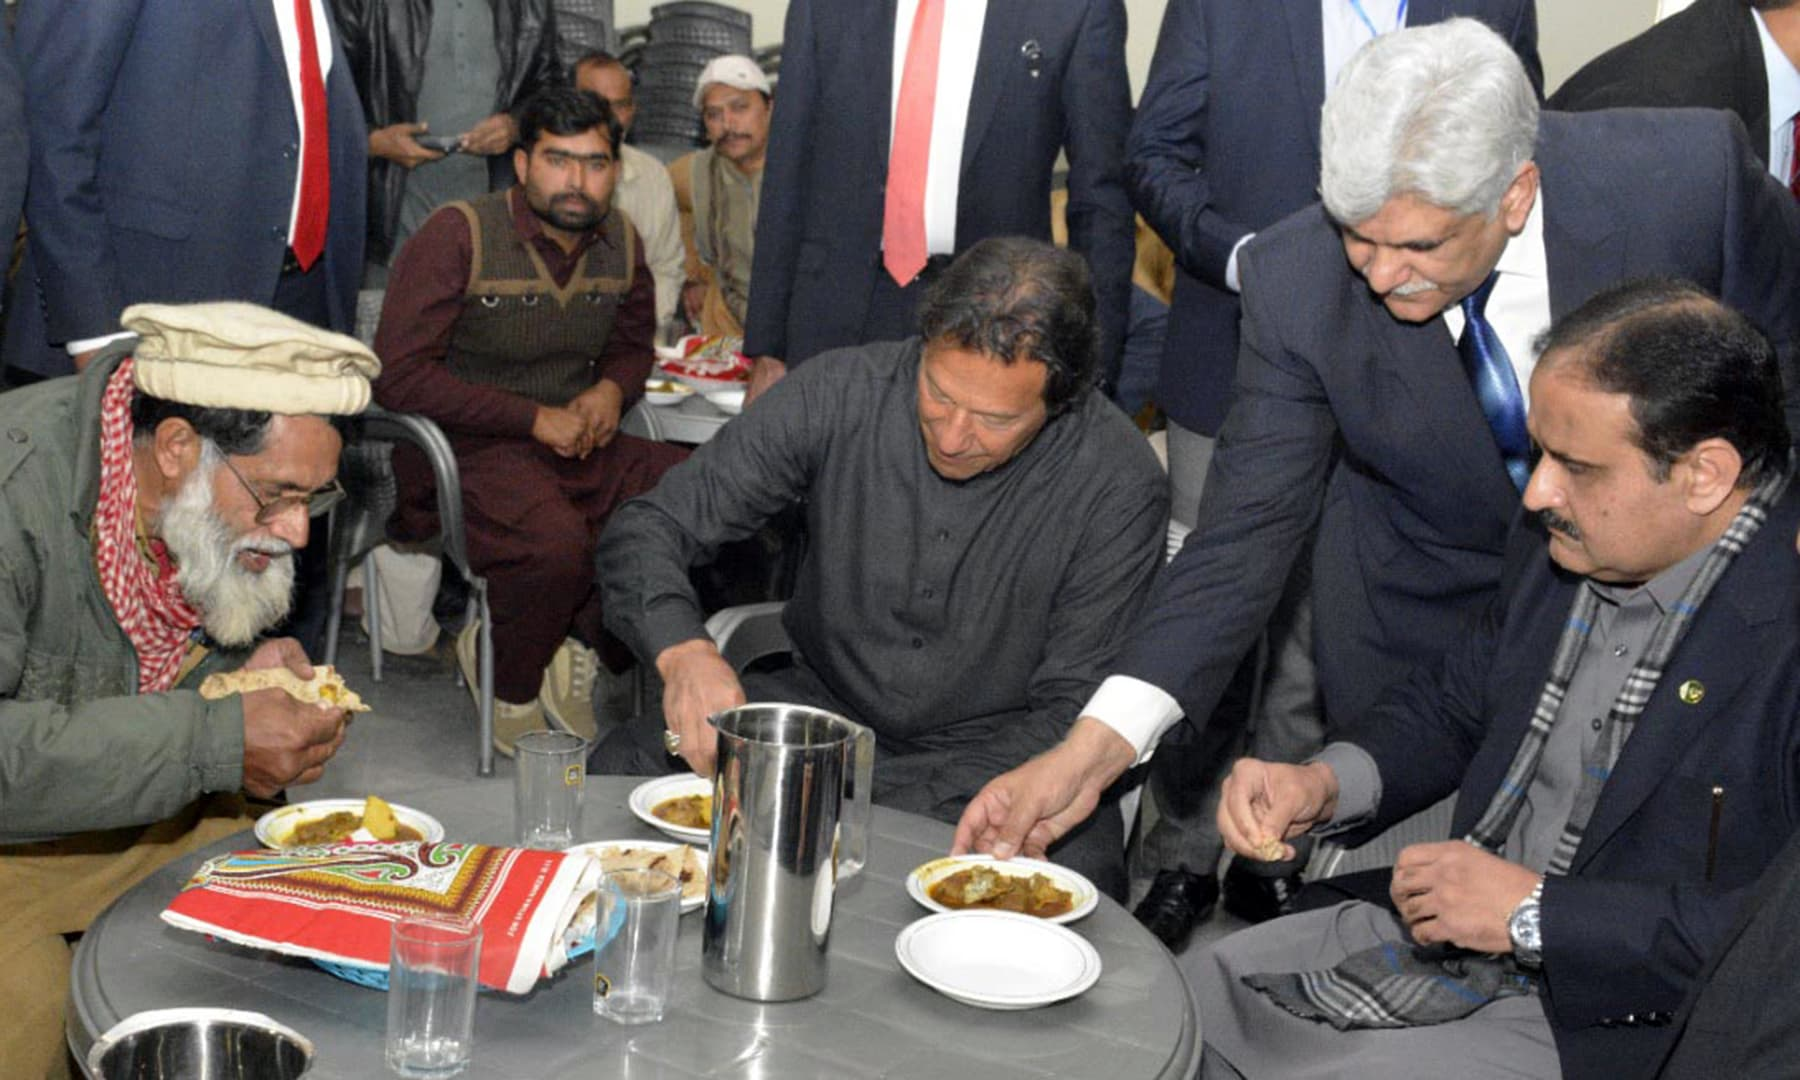 Prime Minister Imran Khan joins people staying at Panahgah for lunch in Faisalabad on Friday. — PID